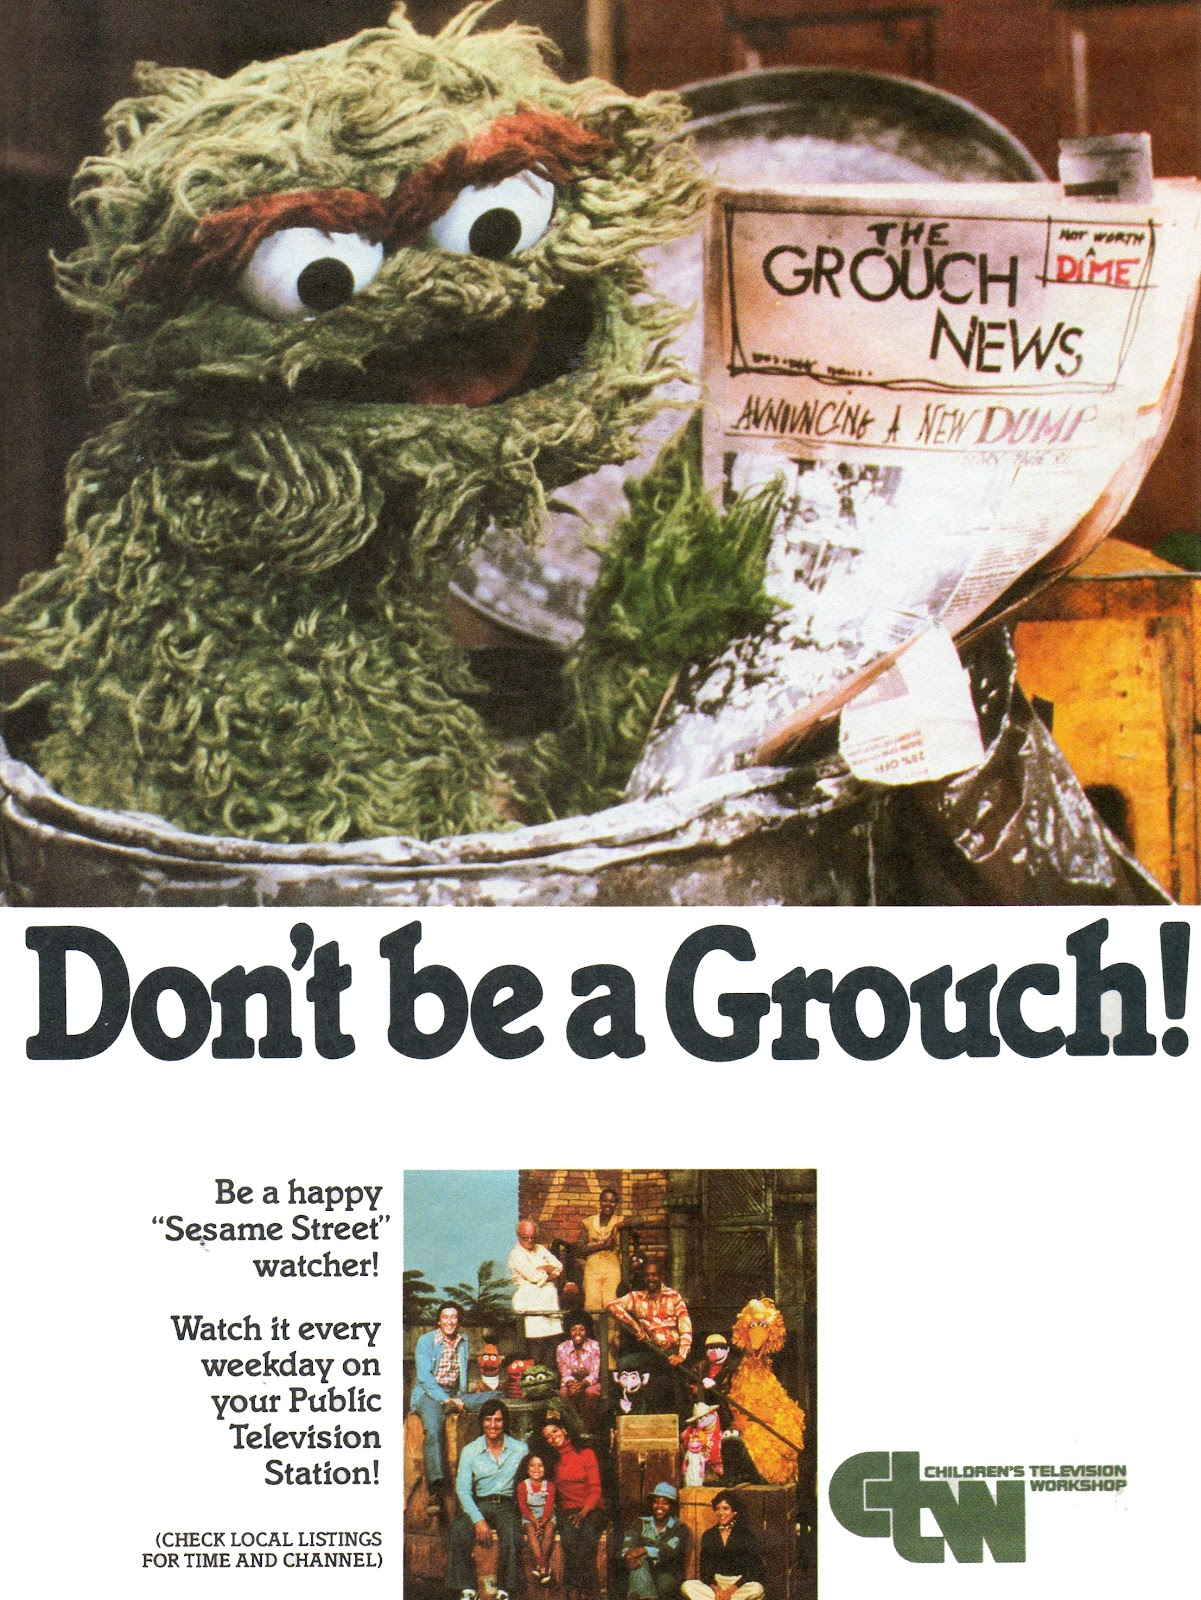 Batman Vs Superman Images also Movie further Oscar Grouch Sesame Street Ad Photo as well The Sloppy Jalopy together with The Adventures of Elmo in Grouchland. on oscar the grouch game